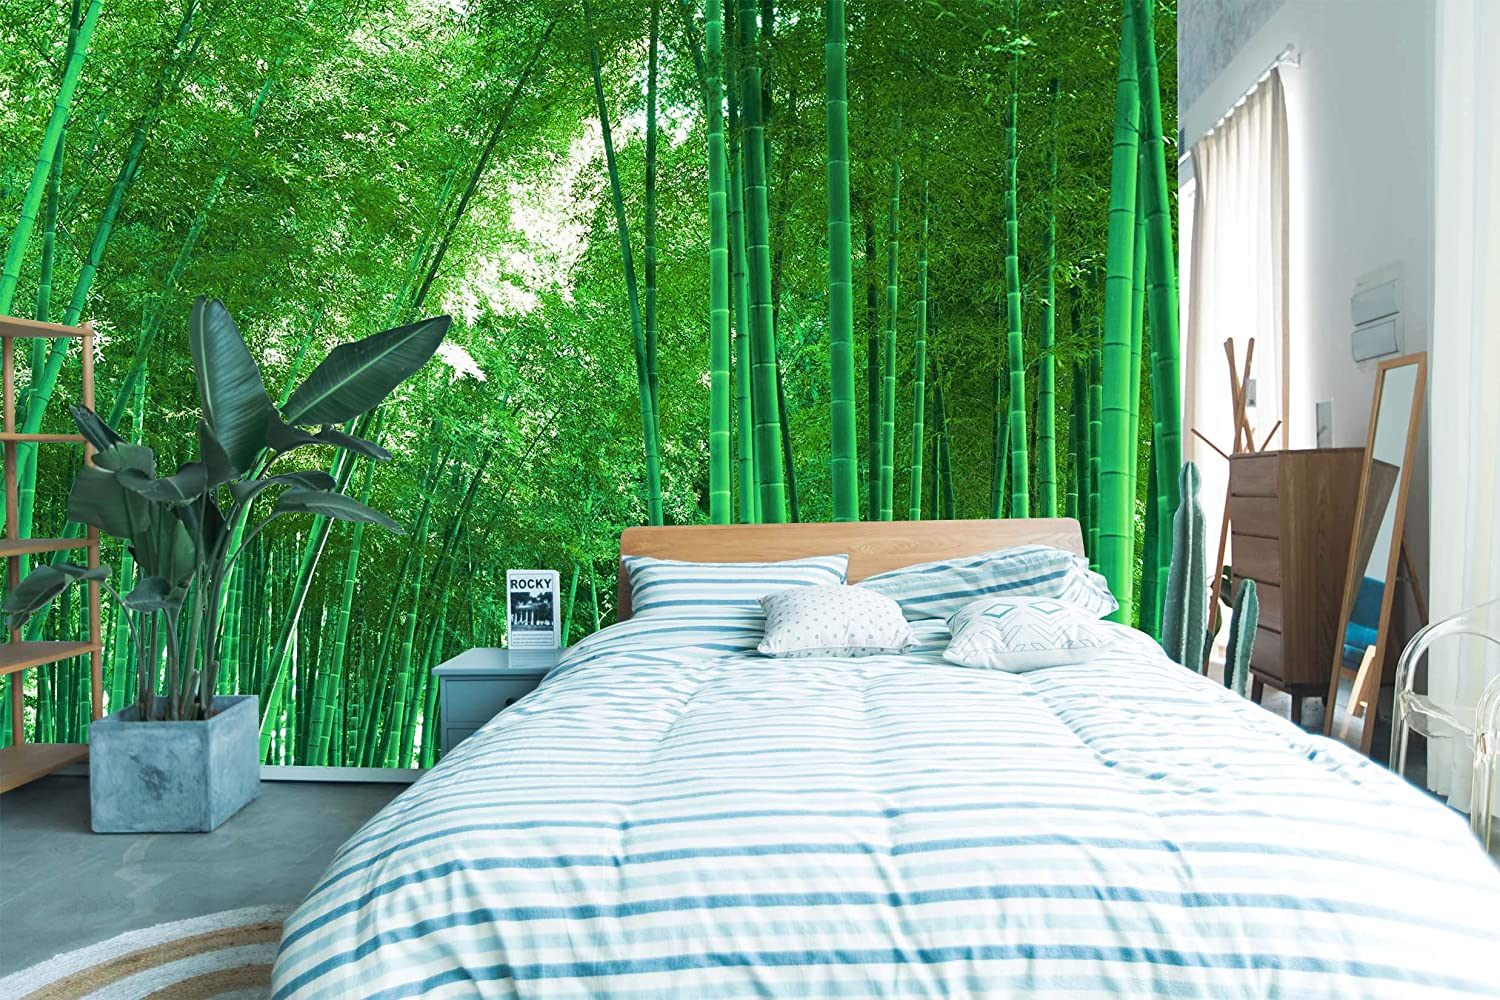 3D Green Bamboo Forest 1764 Wall Decal Deco Print Mur Paper 2021 new Overseas parallel import regular item